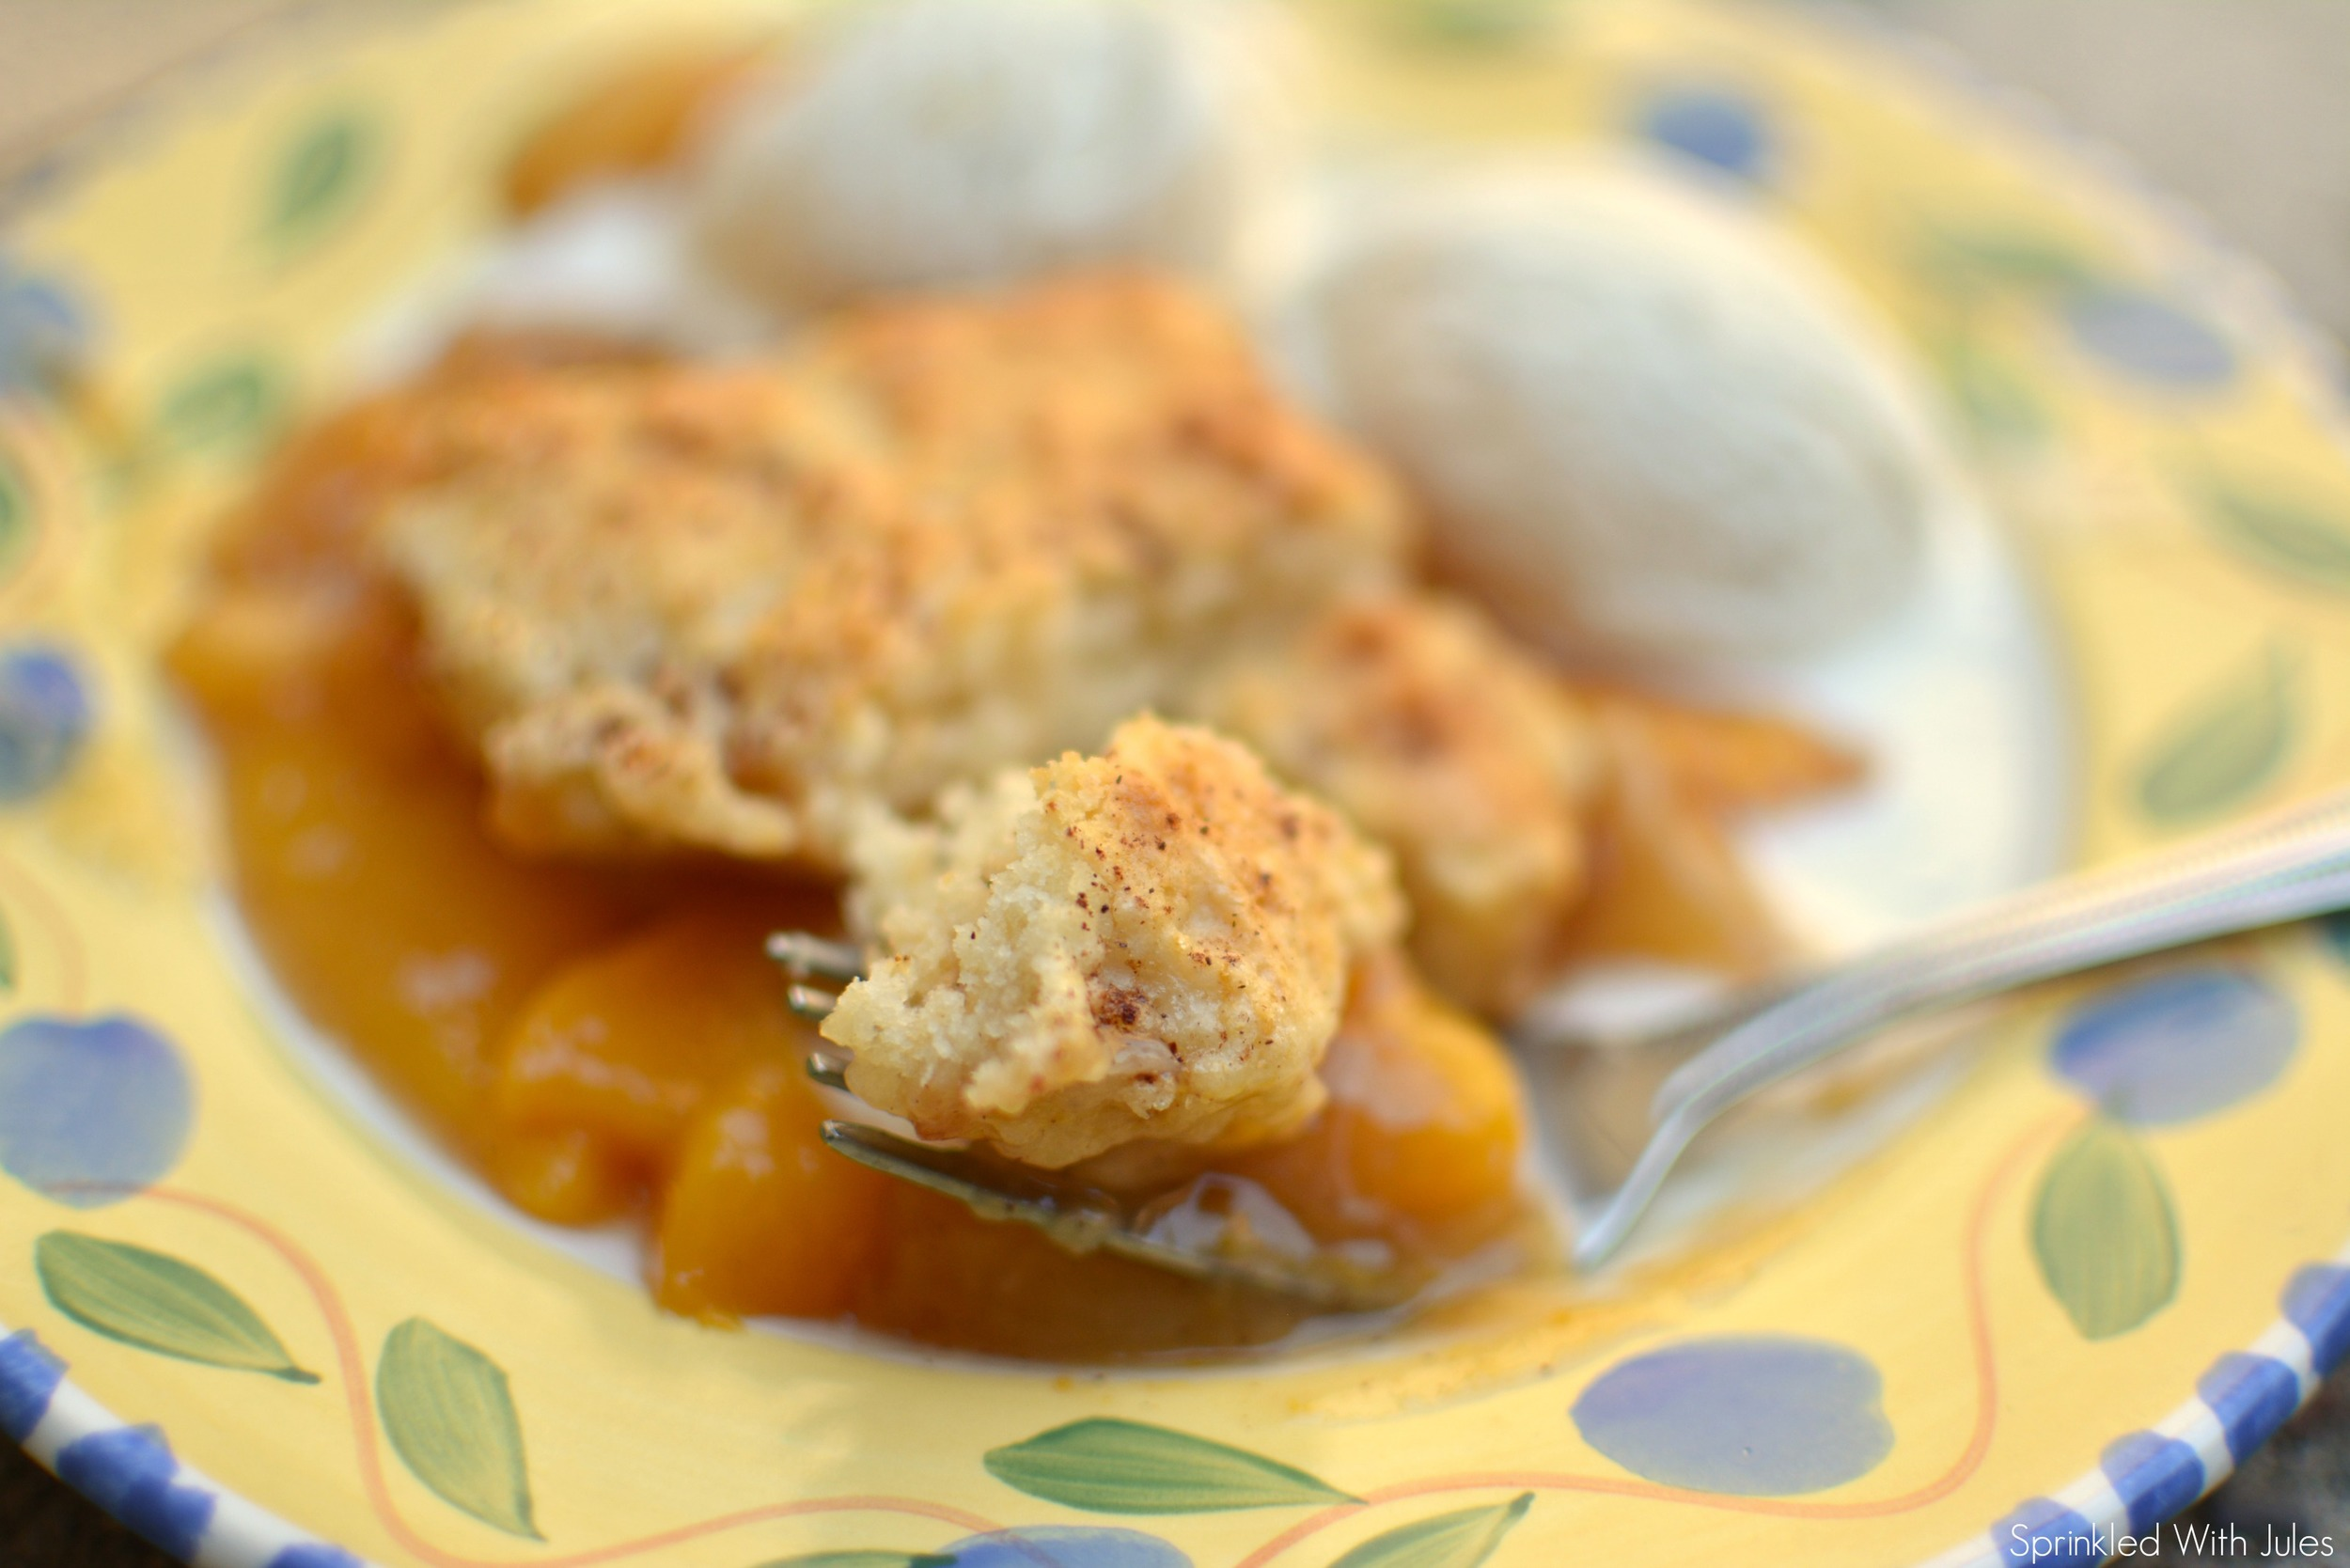 Peach Cobbler / Sprinkled With Jules